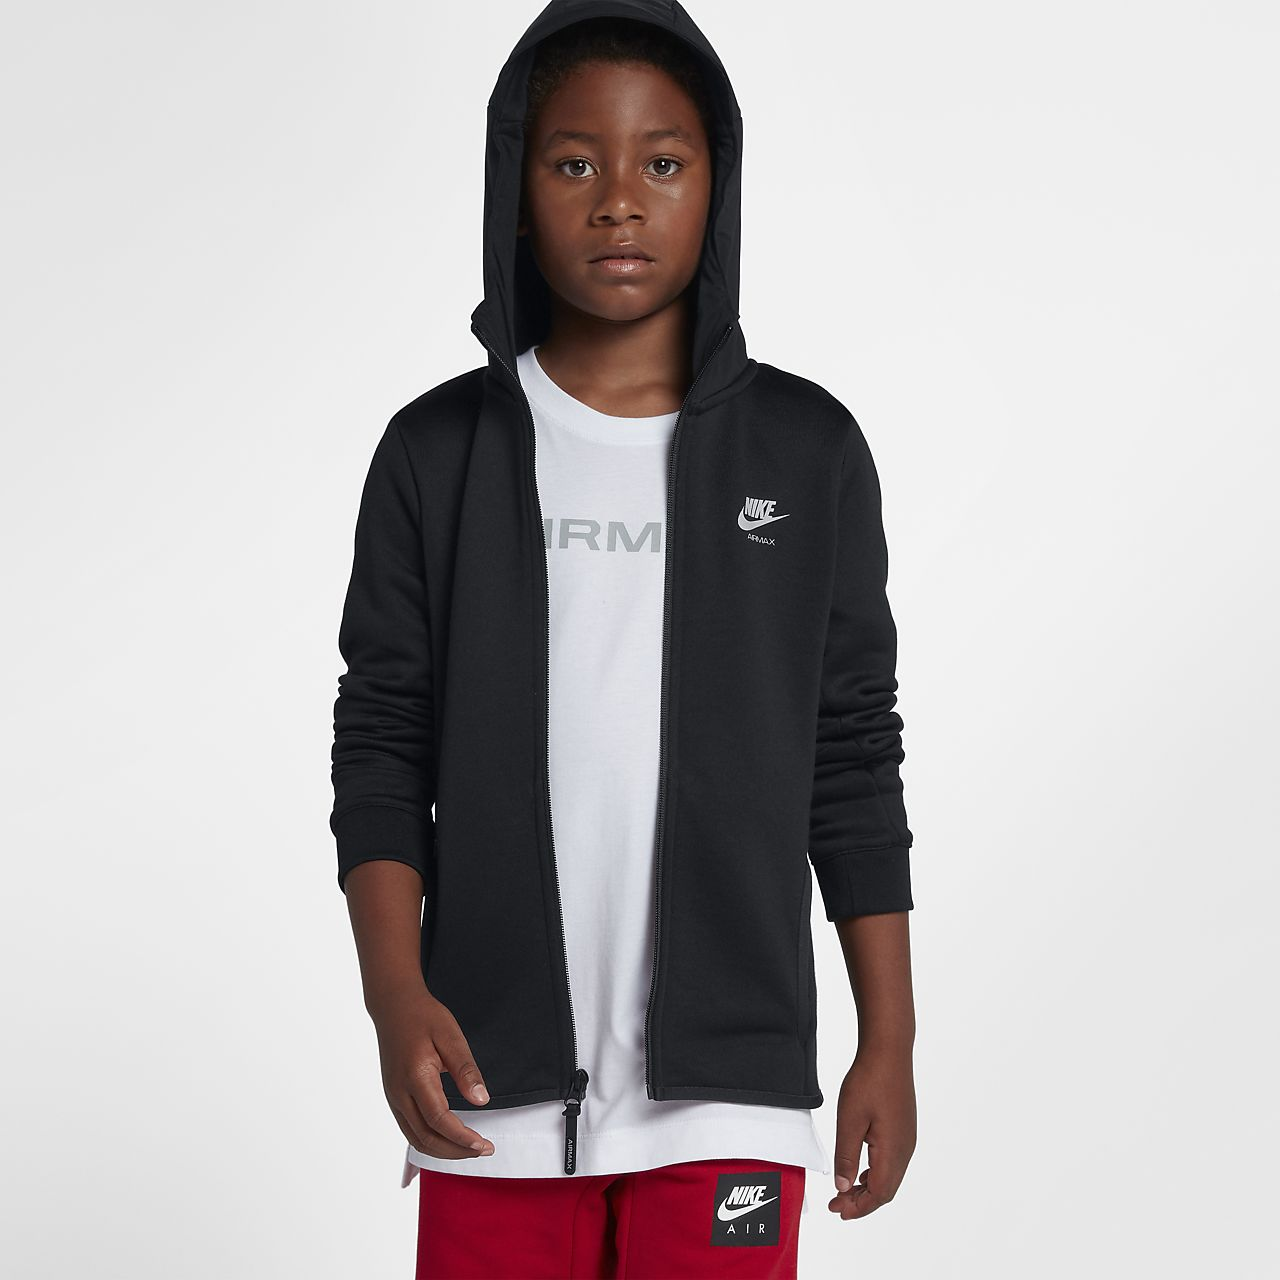 67b51149e2cc Nike Air Max Older Kids  (Boys ) Full-Zip Hoodie. Nike.com AU